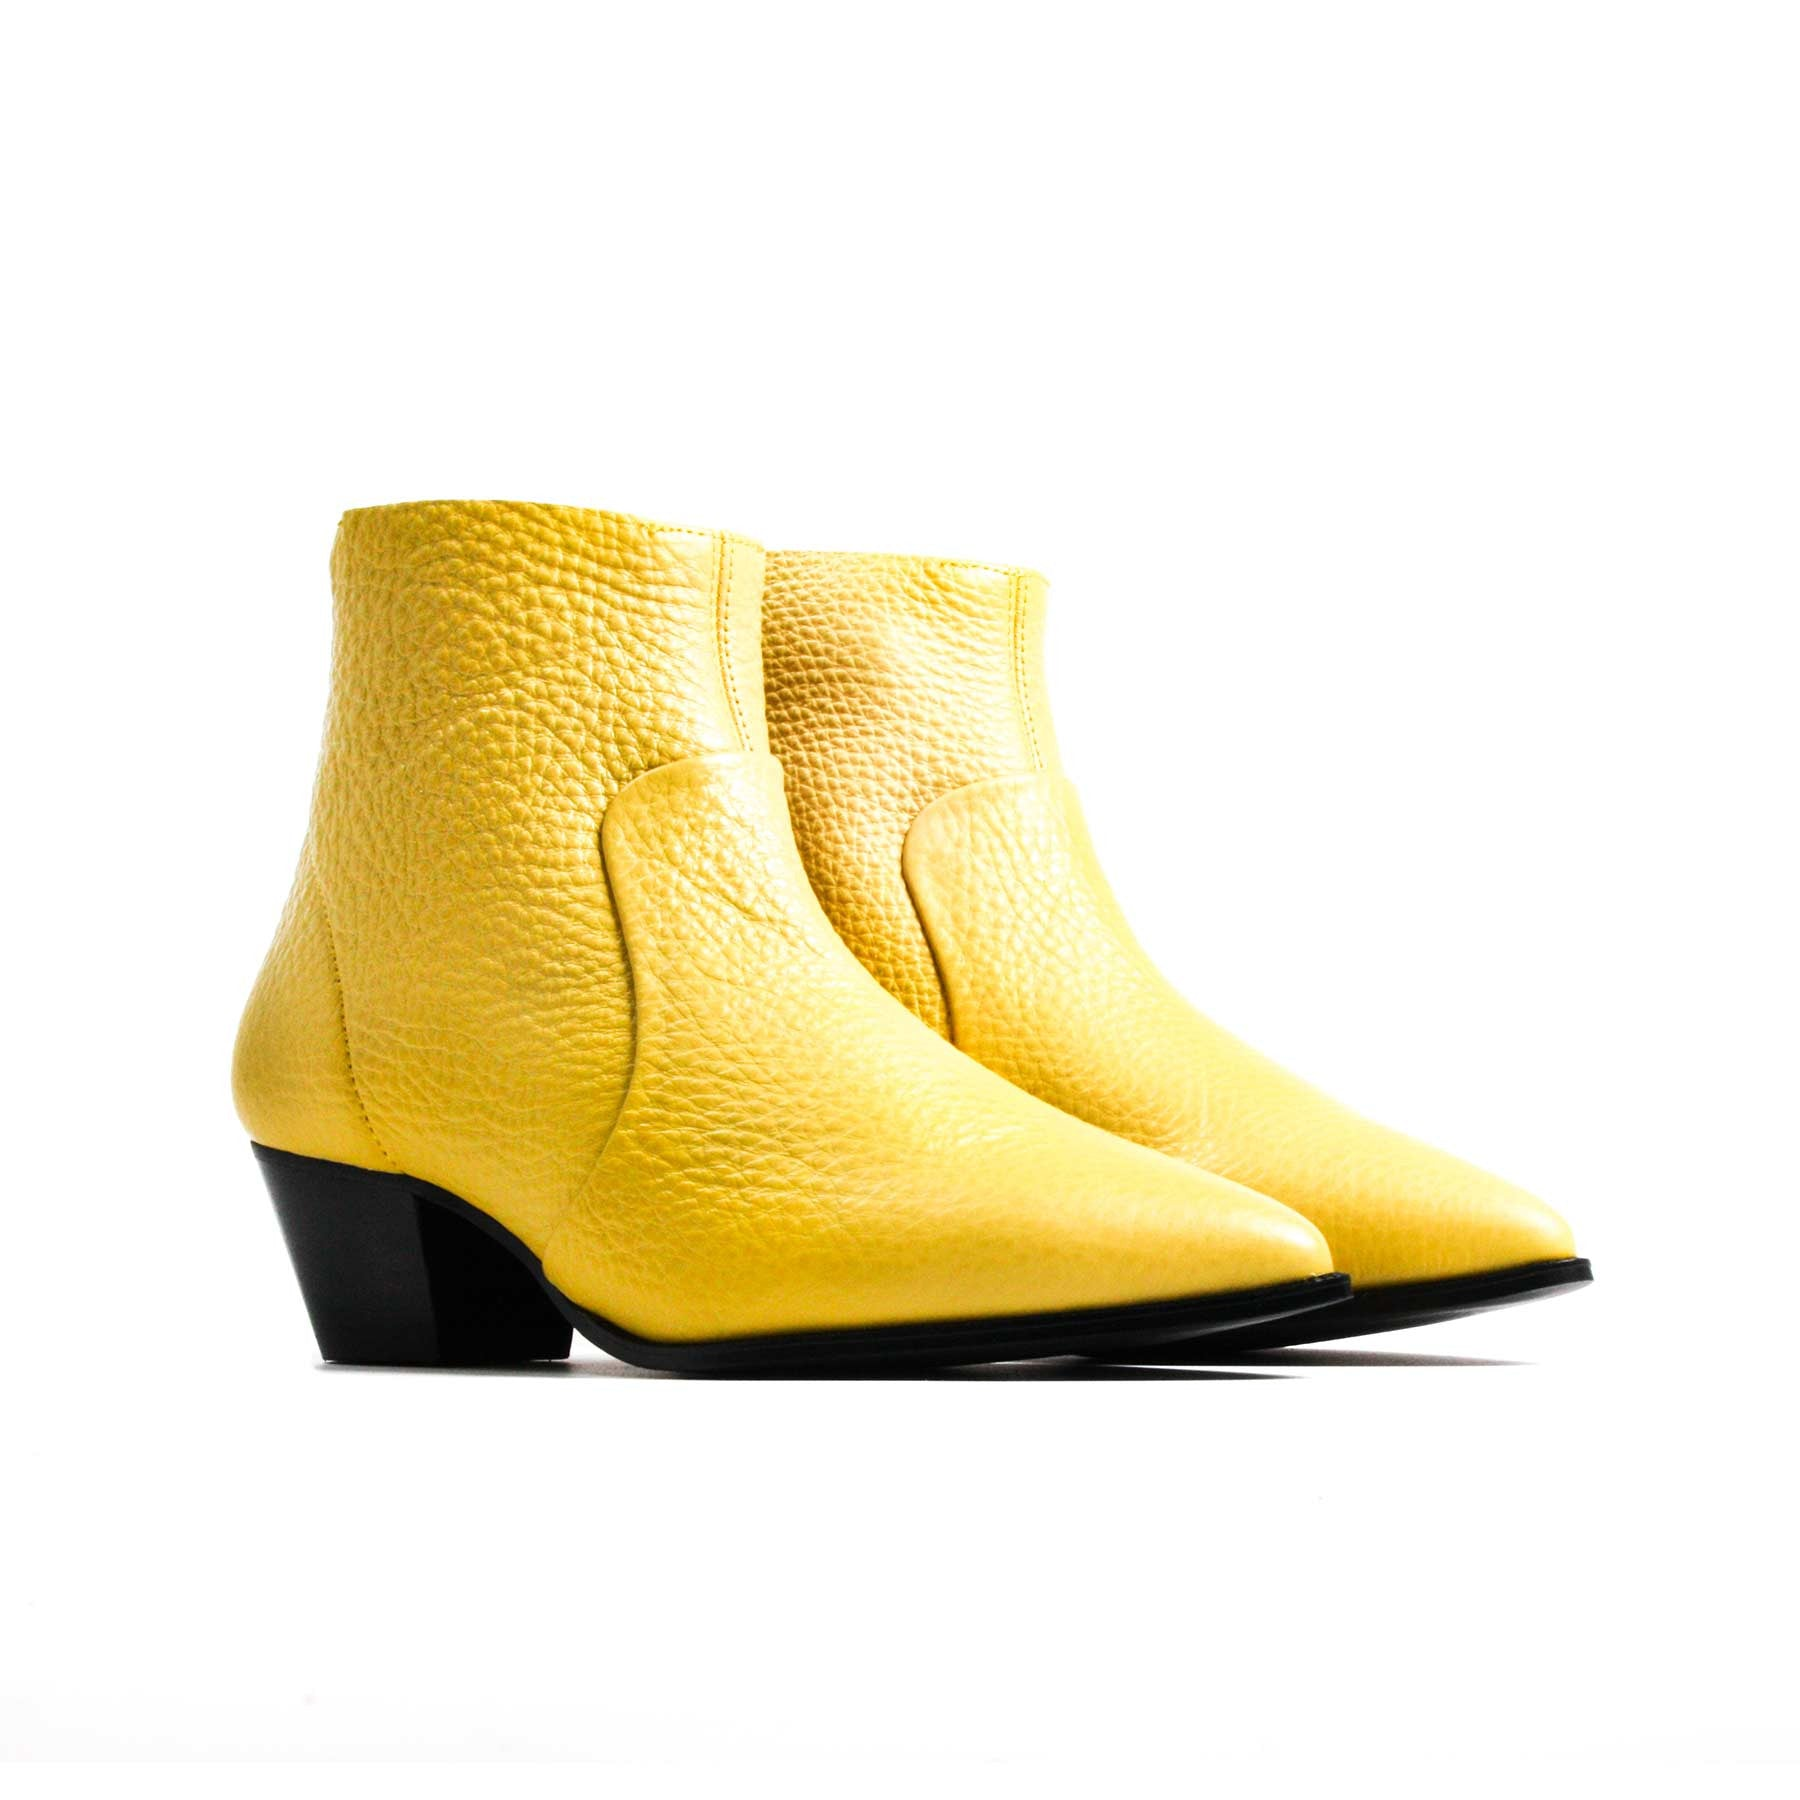 Boots, Brooks Yellow Leather - Lintervalle shoes for woman